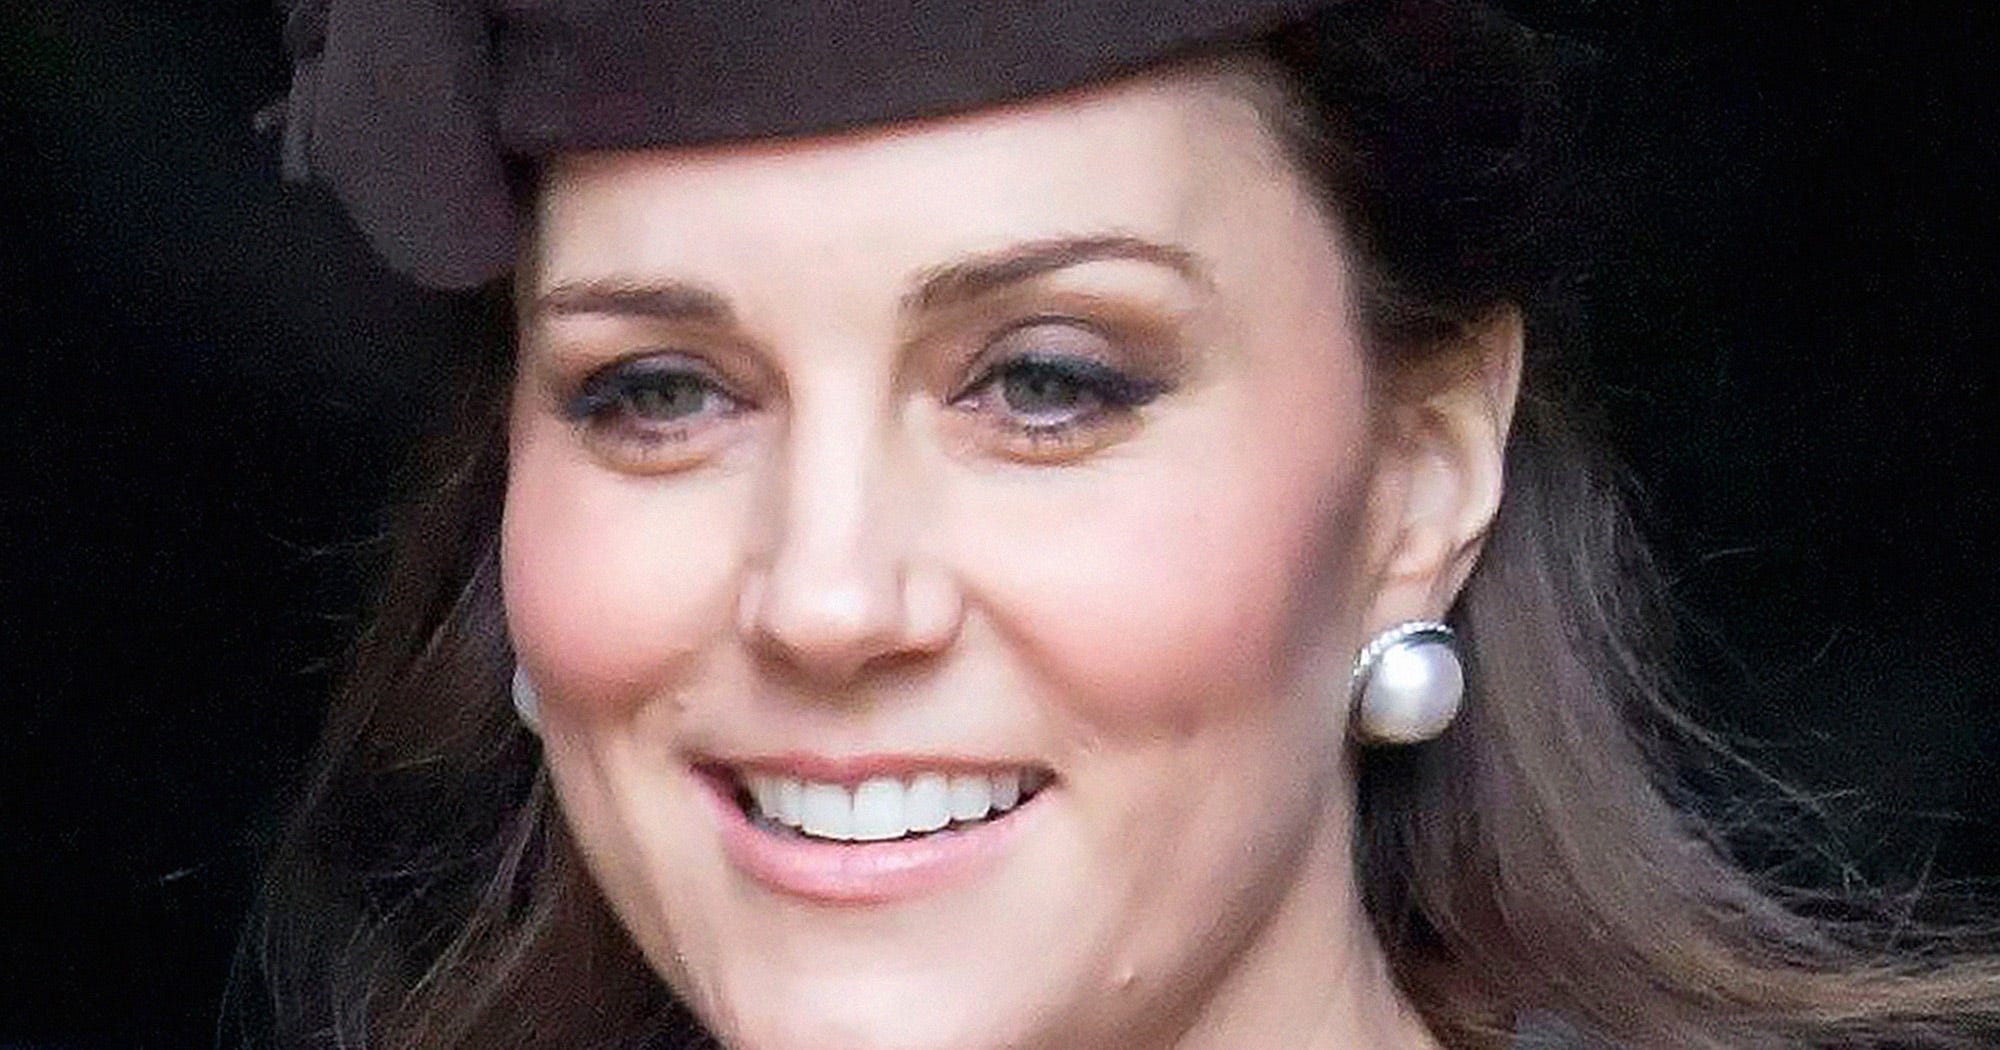 The Royal Wedding Will Give Kate Middleton A Chance To...Relax ...